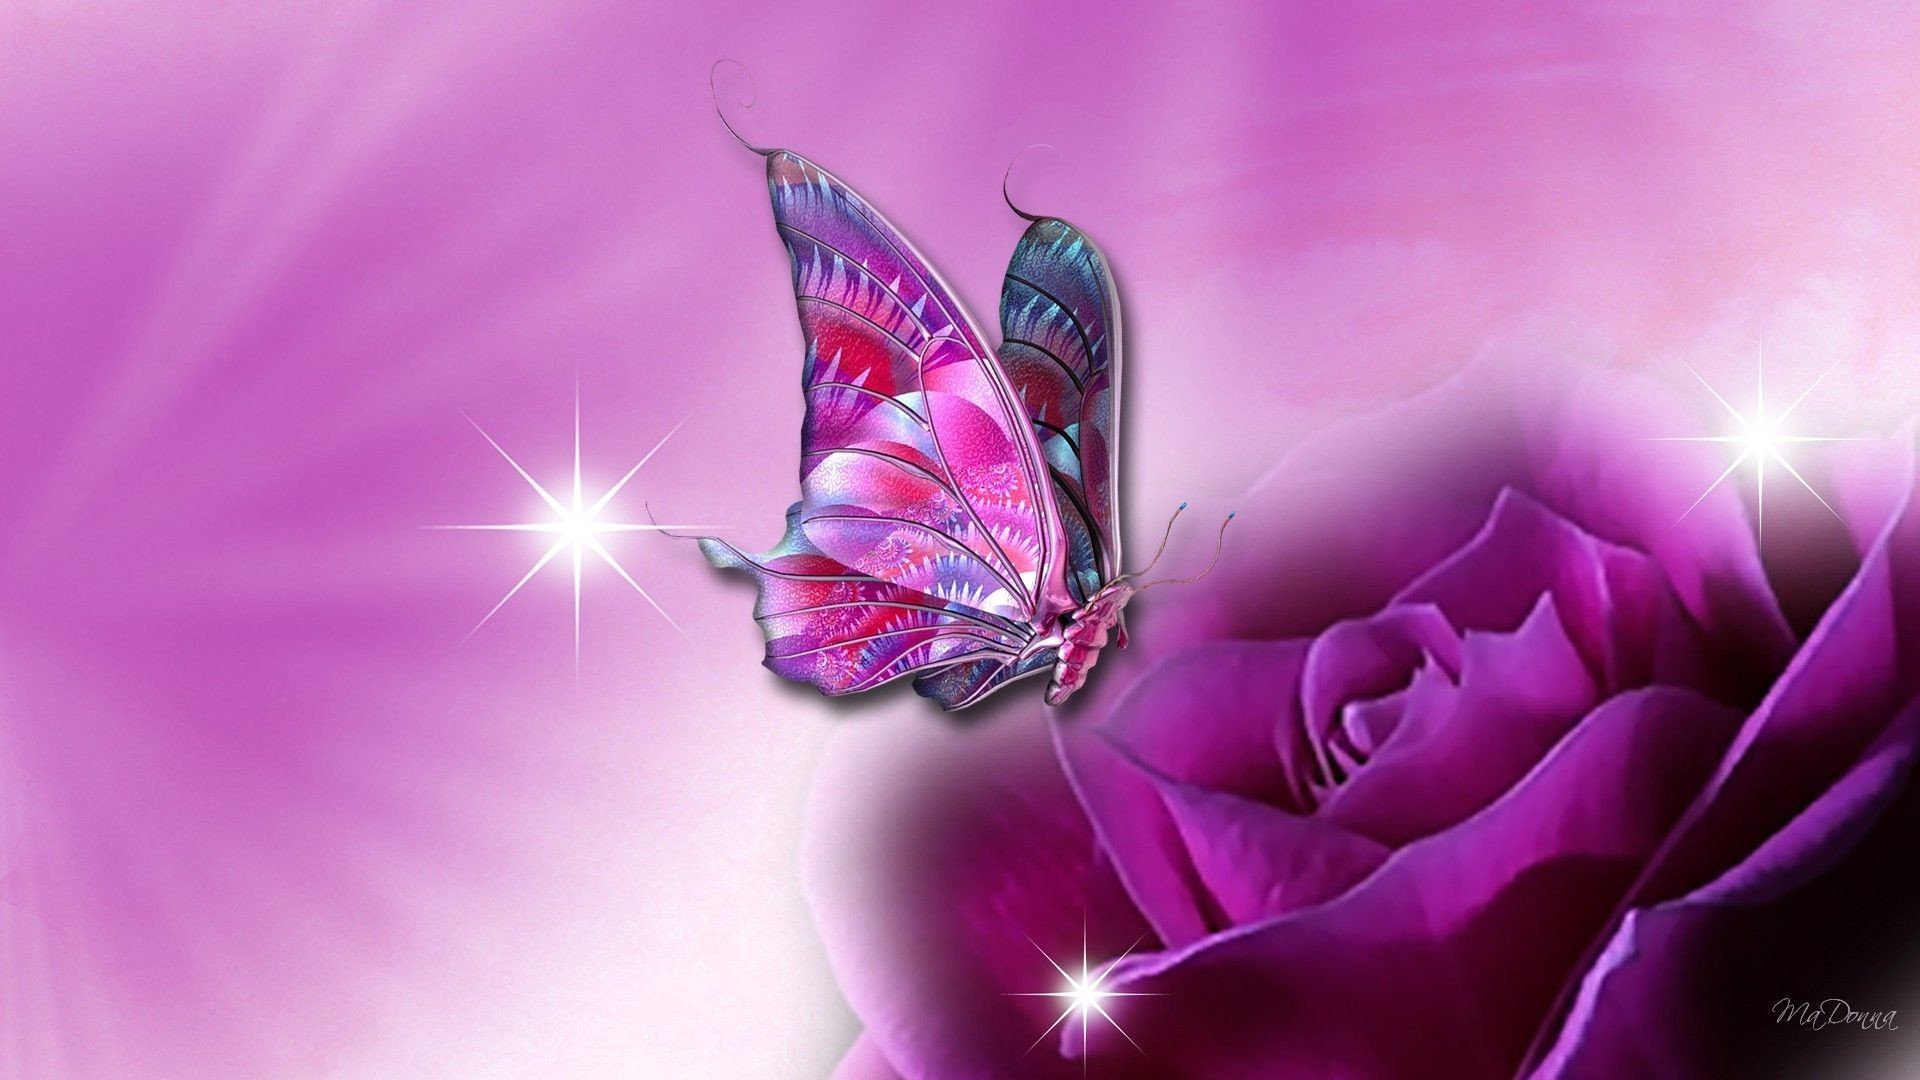 Best Wallpaper Butterfly Hand - 1028741-purple-butterfly-background-1920x1080-for-mobile  You Should Have_32758.jpg